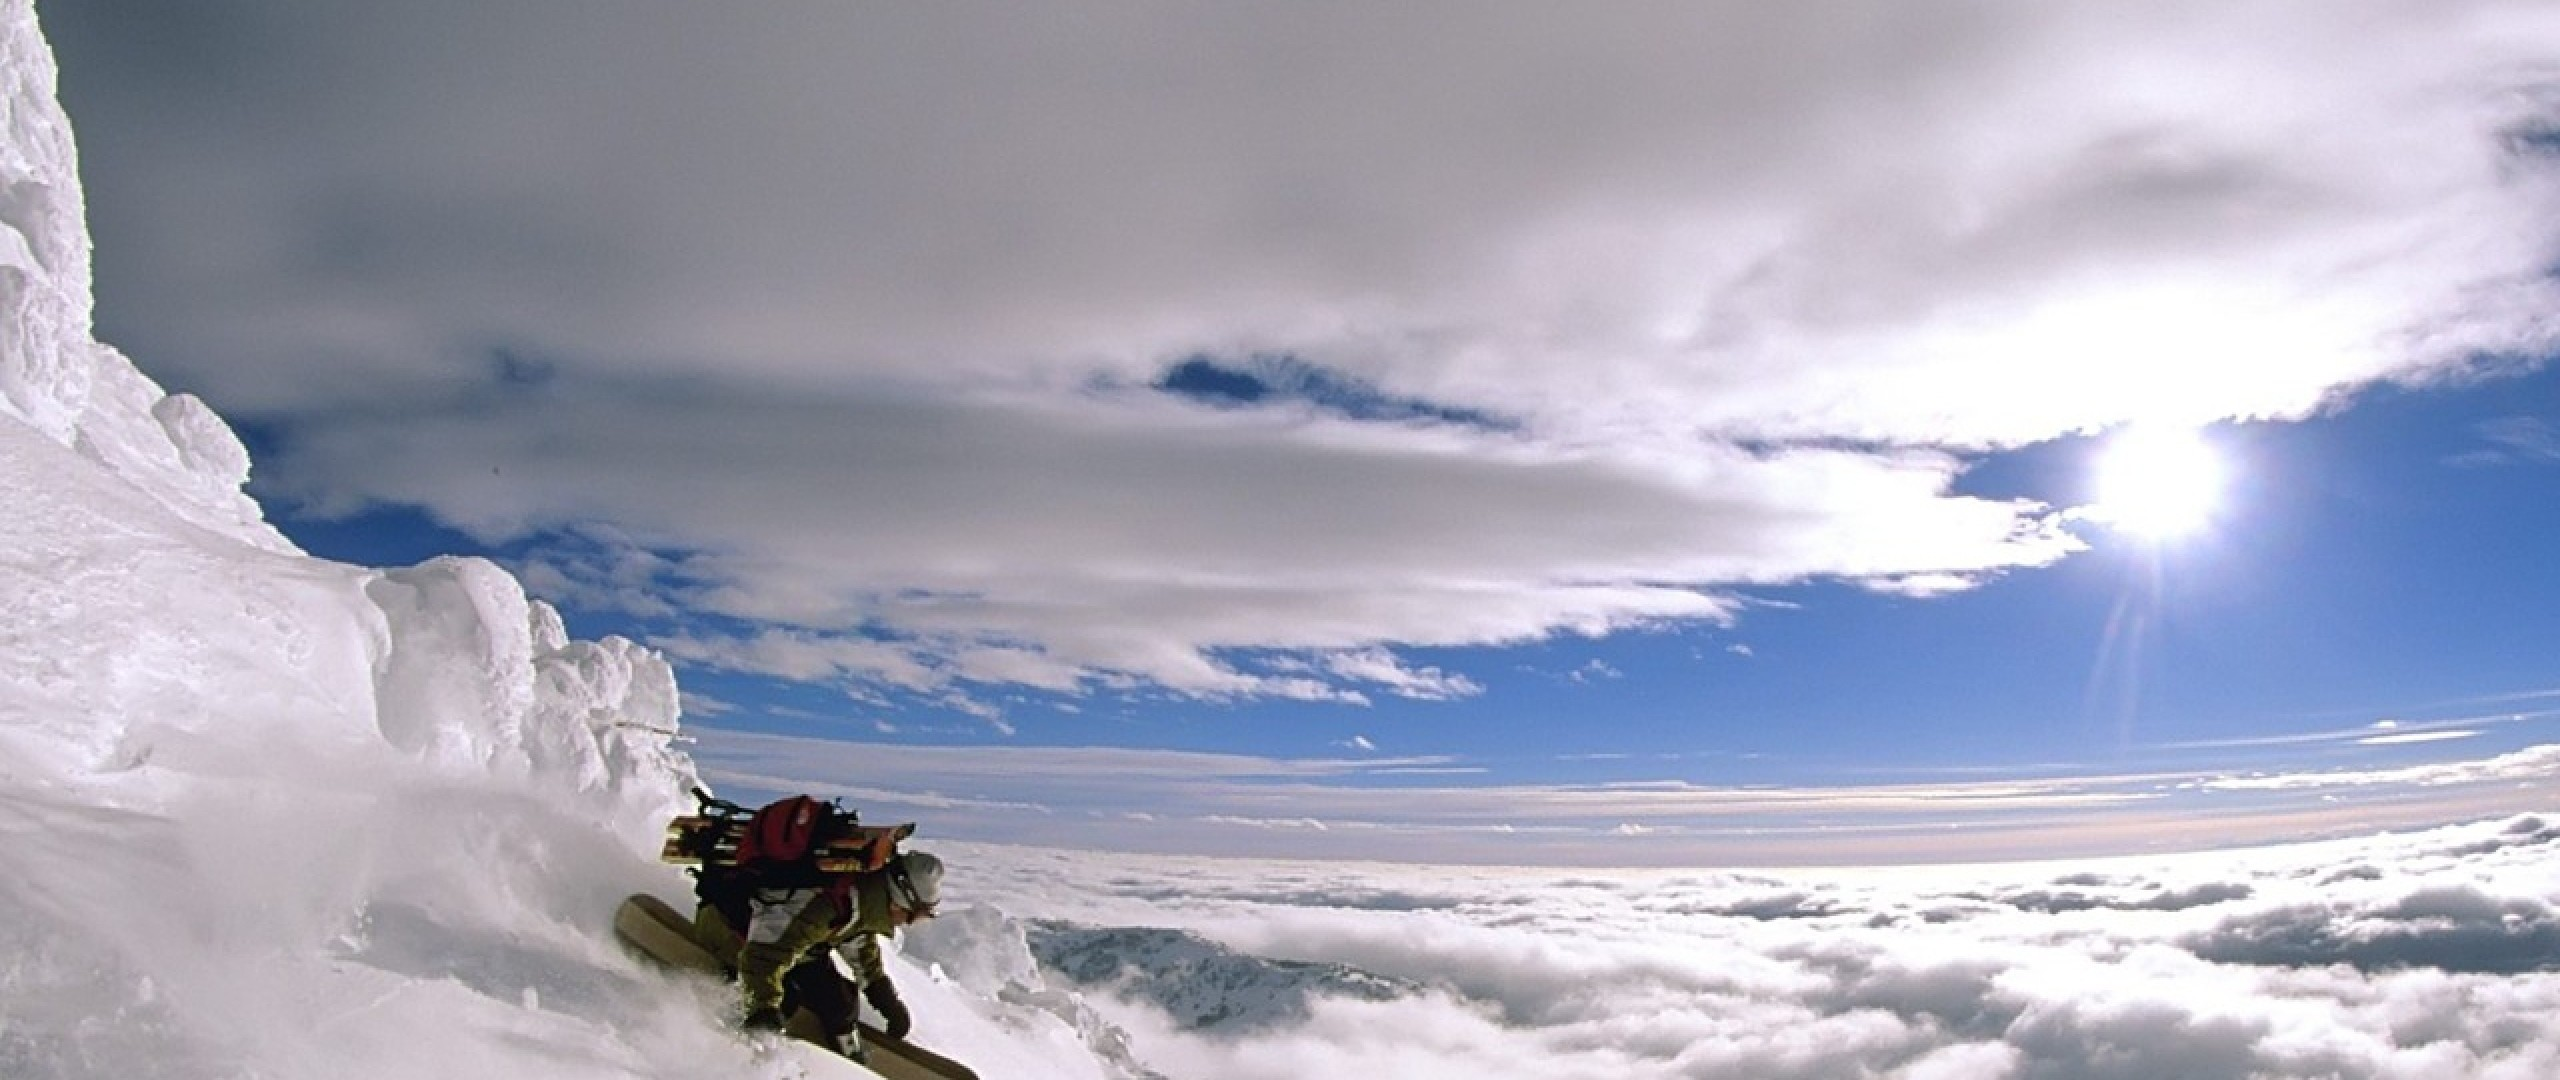 Preview wallpaper extreme, descent, vertical, snowboard, height, mountain,  person 2560×1080